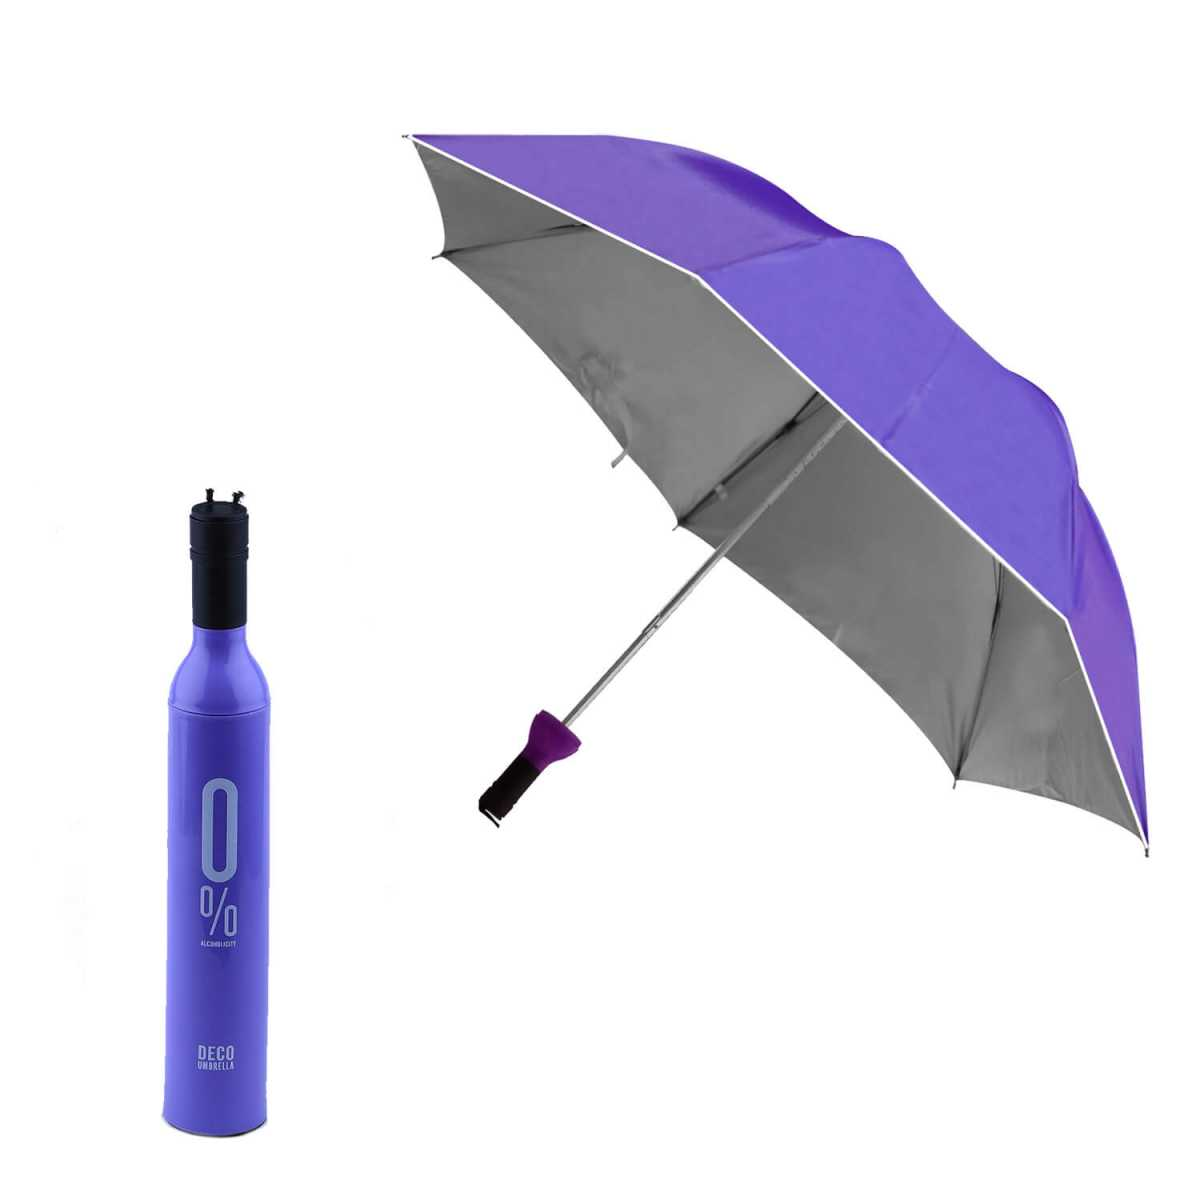 Silver Shine Double Layer Folding Portable Wine Bottle Umbrella with Bottle Cover(Assorted Color)